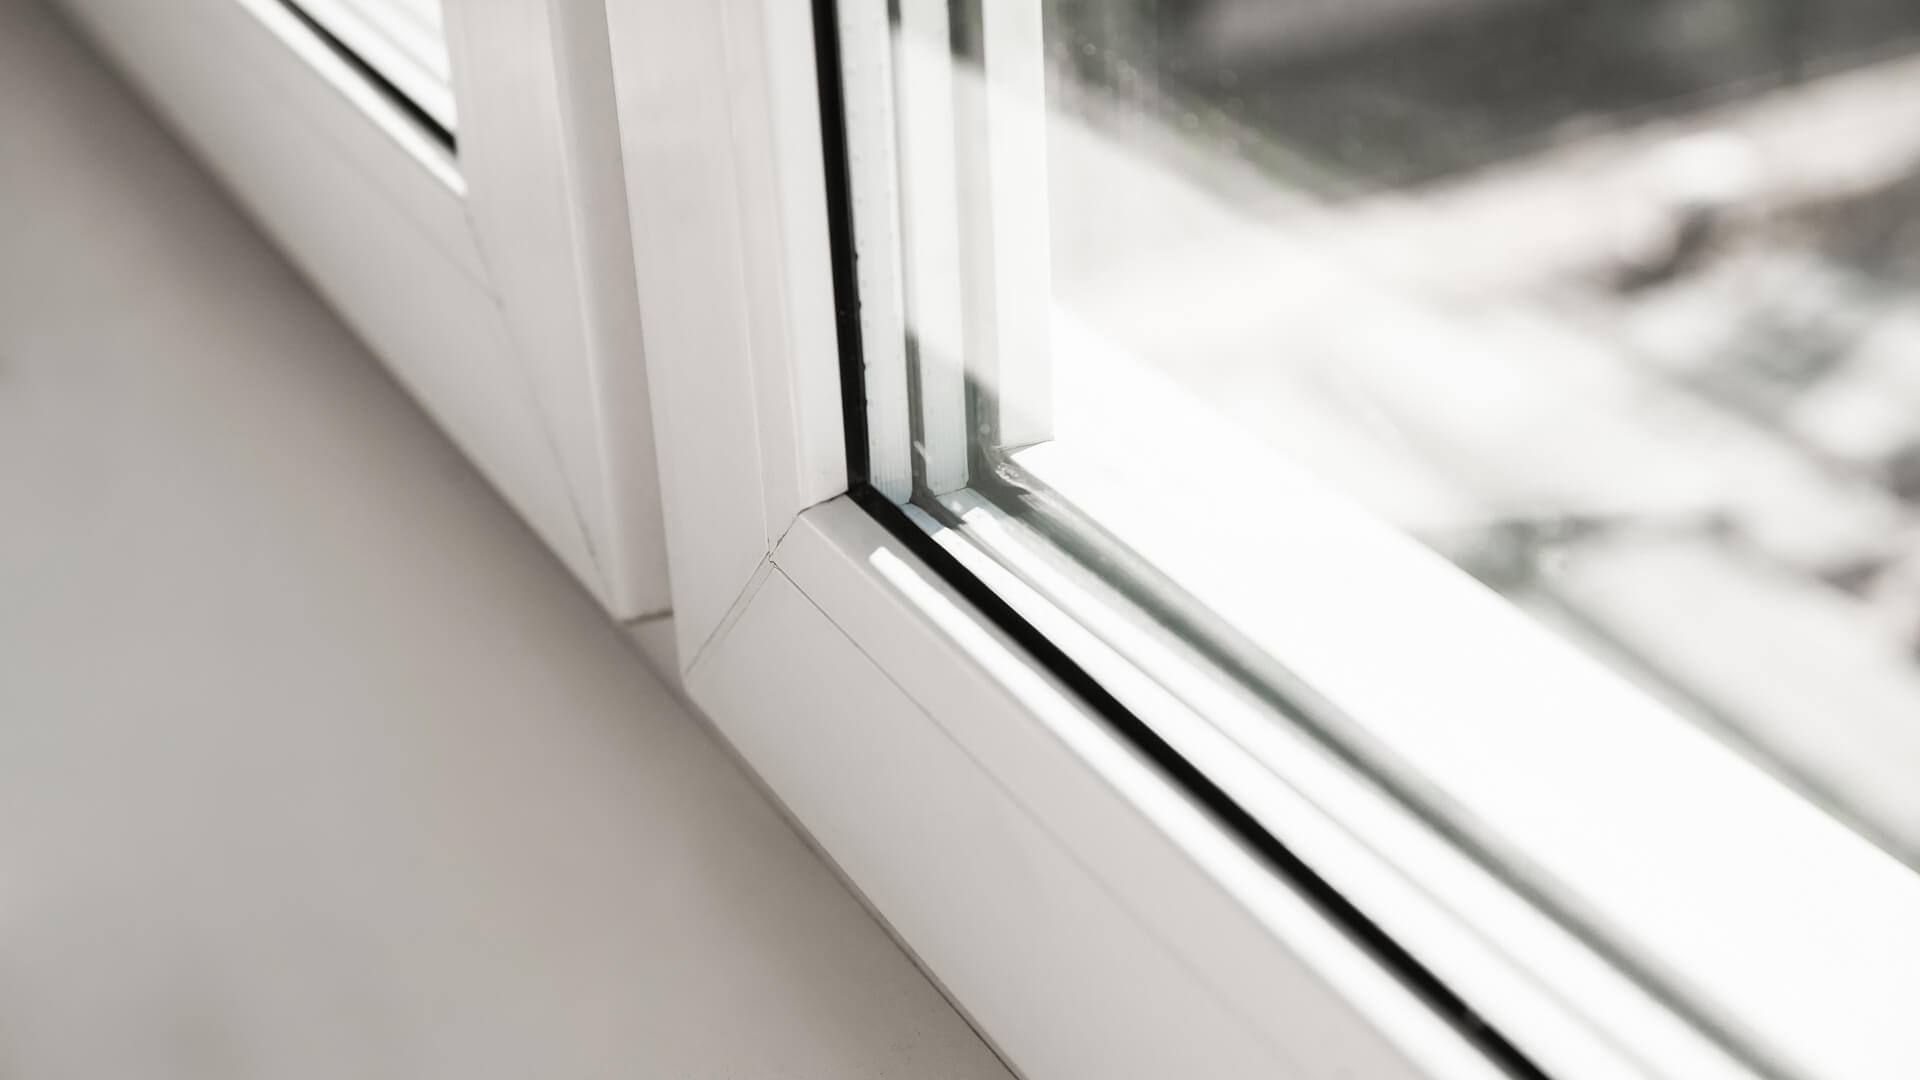 What To Do If Your Double Pane Windows Lose Their Seals